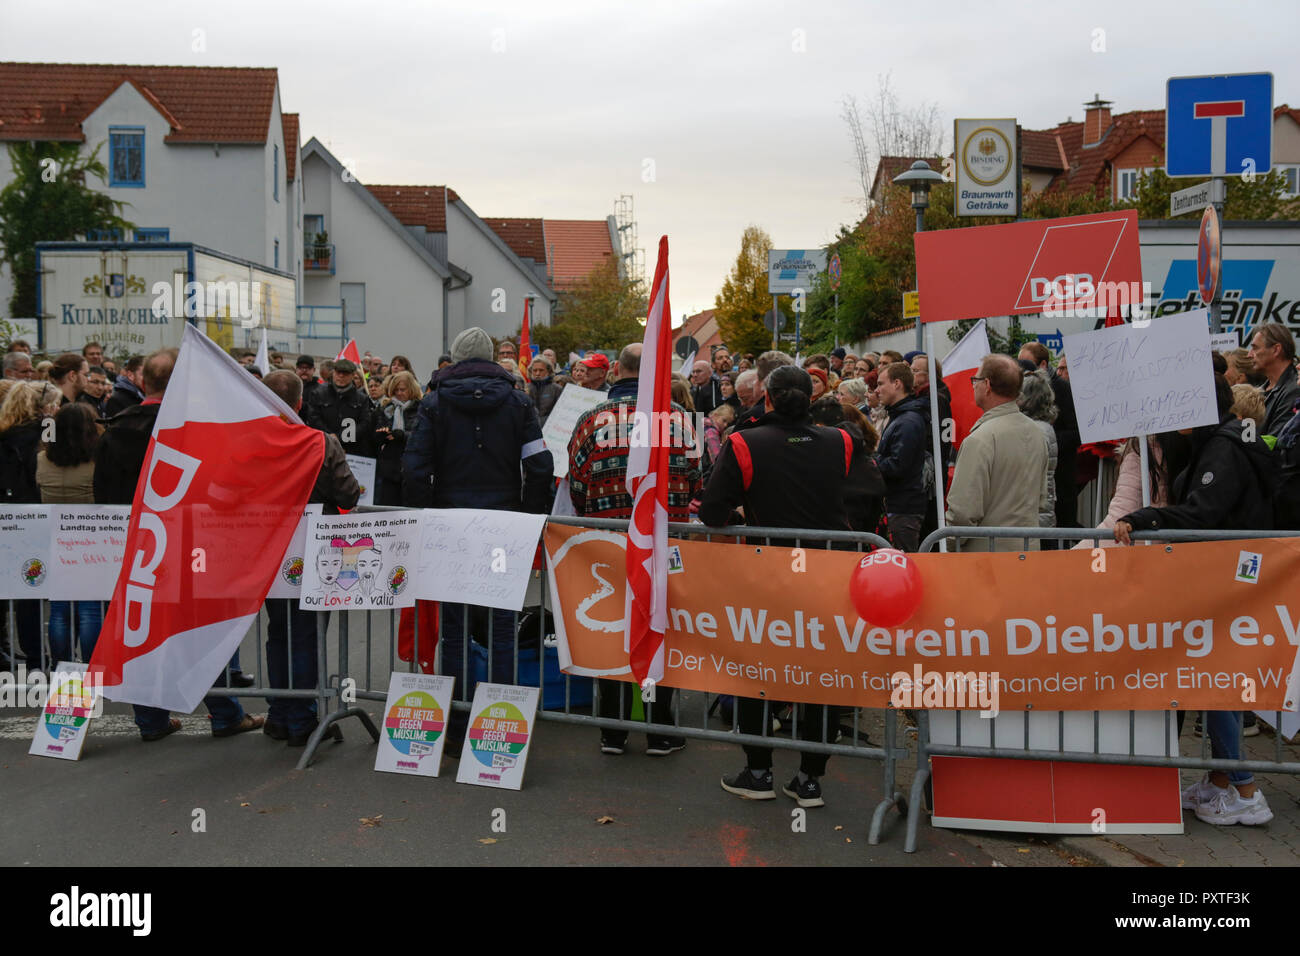 Dieburg, Germany. 23rd Oct, 2018. Some counter protester stand outside the venue. German Chancellor Angela Merkel attended a political rally of her CDU party in Dieburg ahead of the upcoming state election in the German state of Hesse. With less than a week to go to the election, the CDU is still leading the polls, but gas lost more than 10% compared to the last election. Credit: Michael Debets/Pacific Press/Alamy Live News - Stock Image